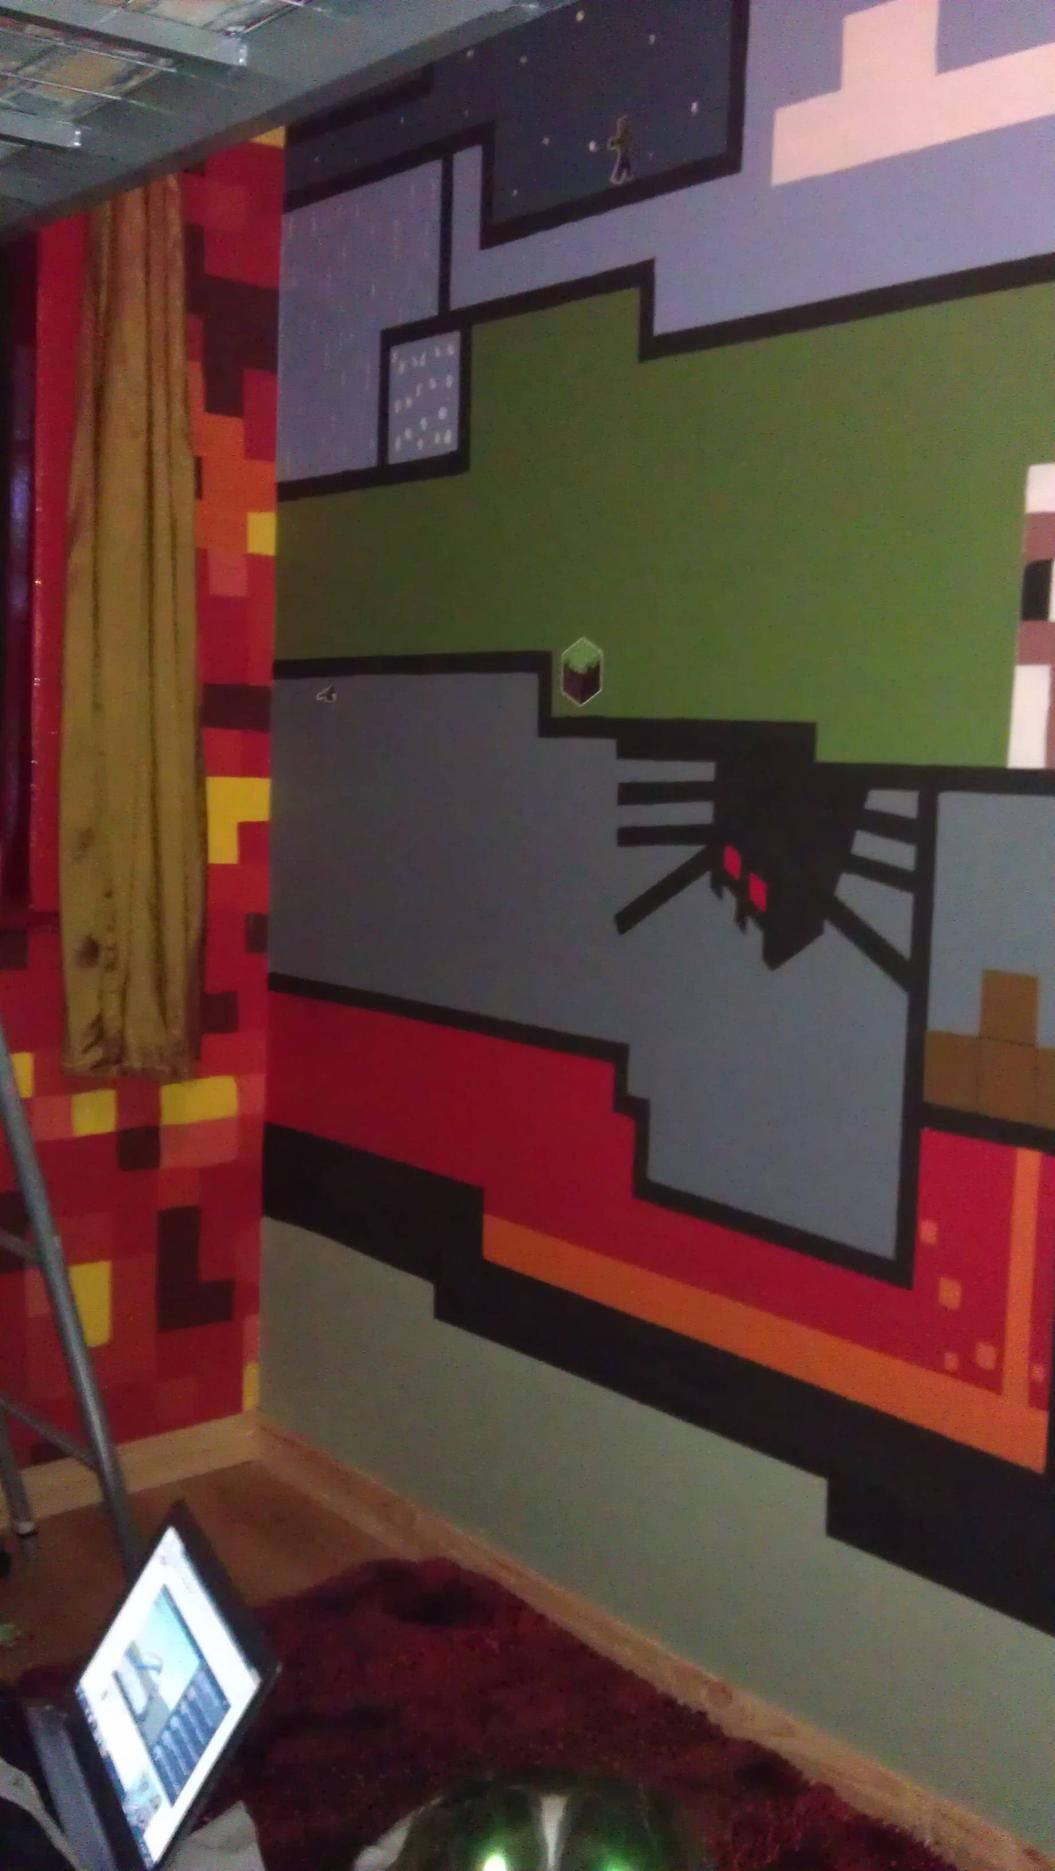 Pin by Wendy Saylor on Boy's bedroom ideas | Minecraft ...